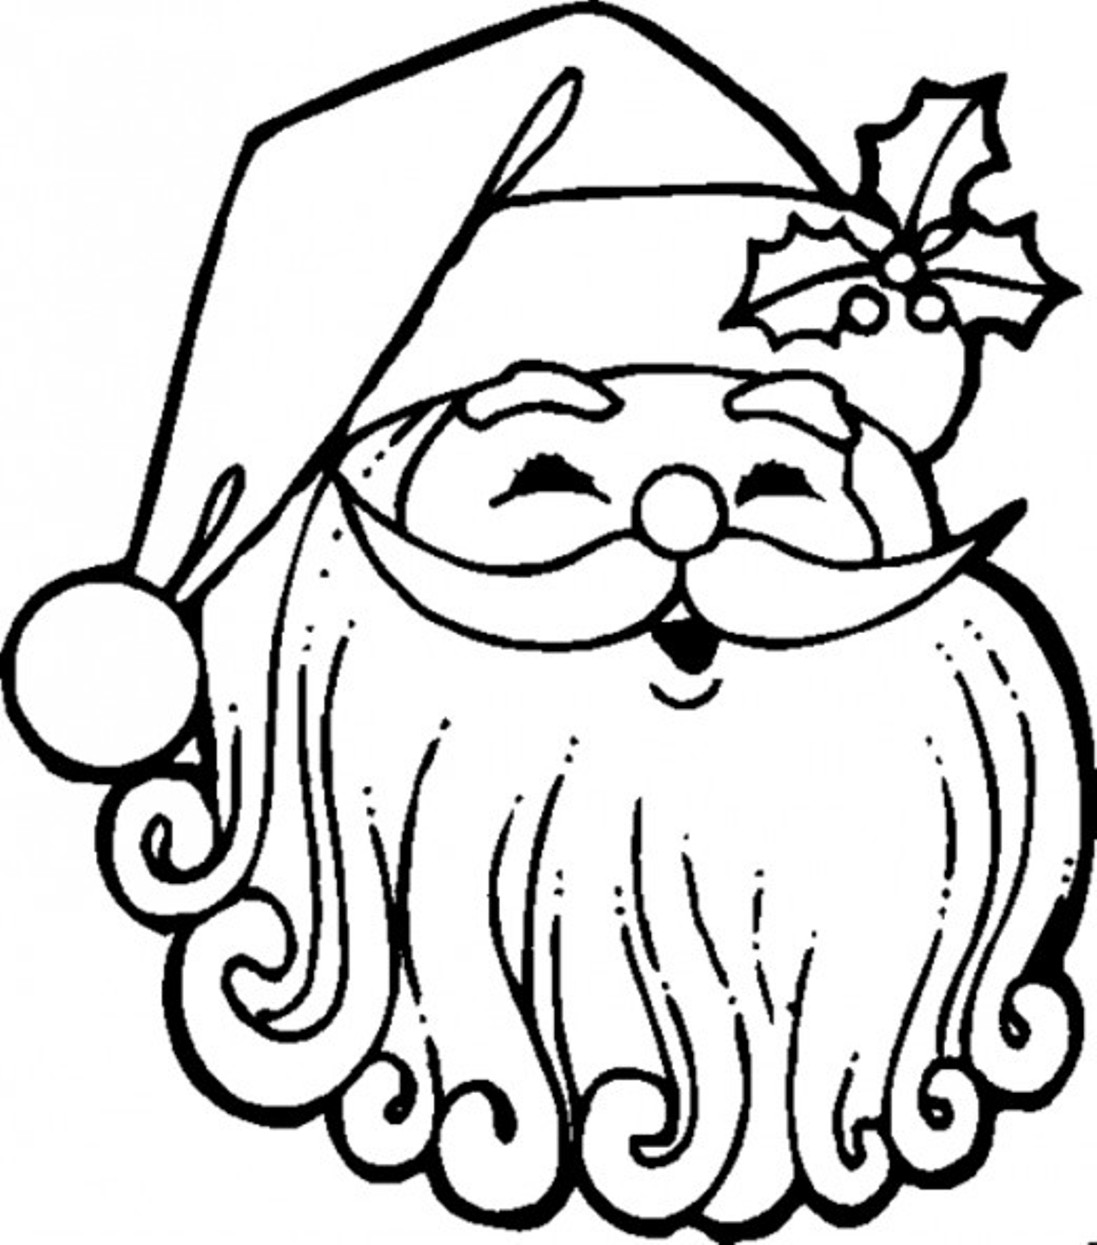 1097x1245 santa claus coloring pages the sun flower pages - Santa Claus Coloring Printables